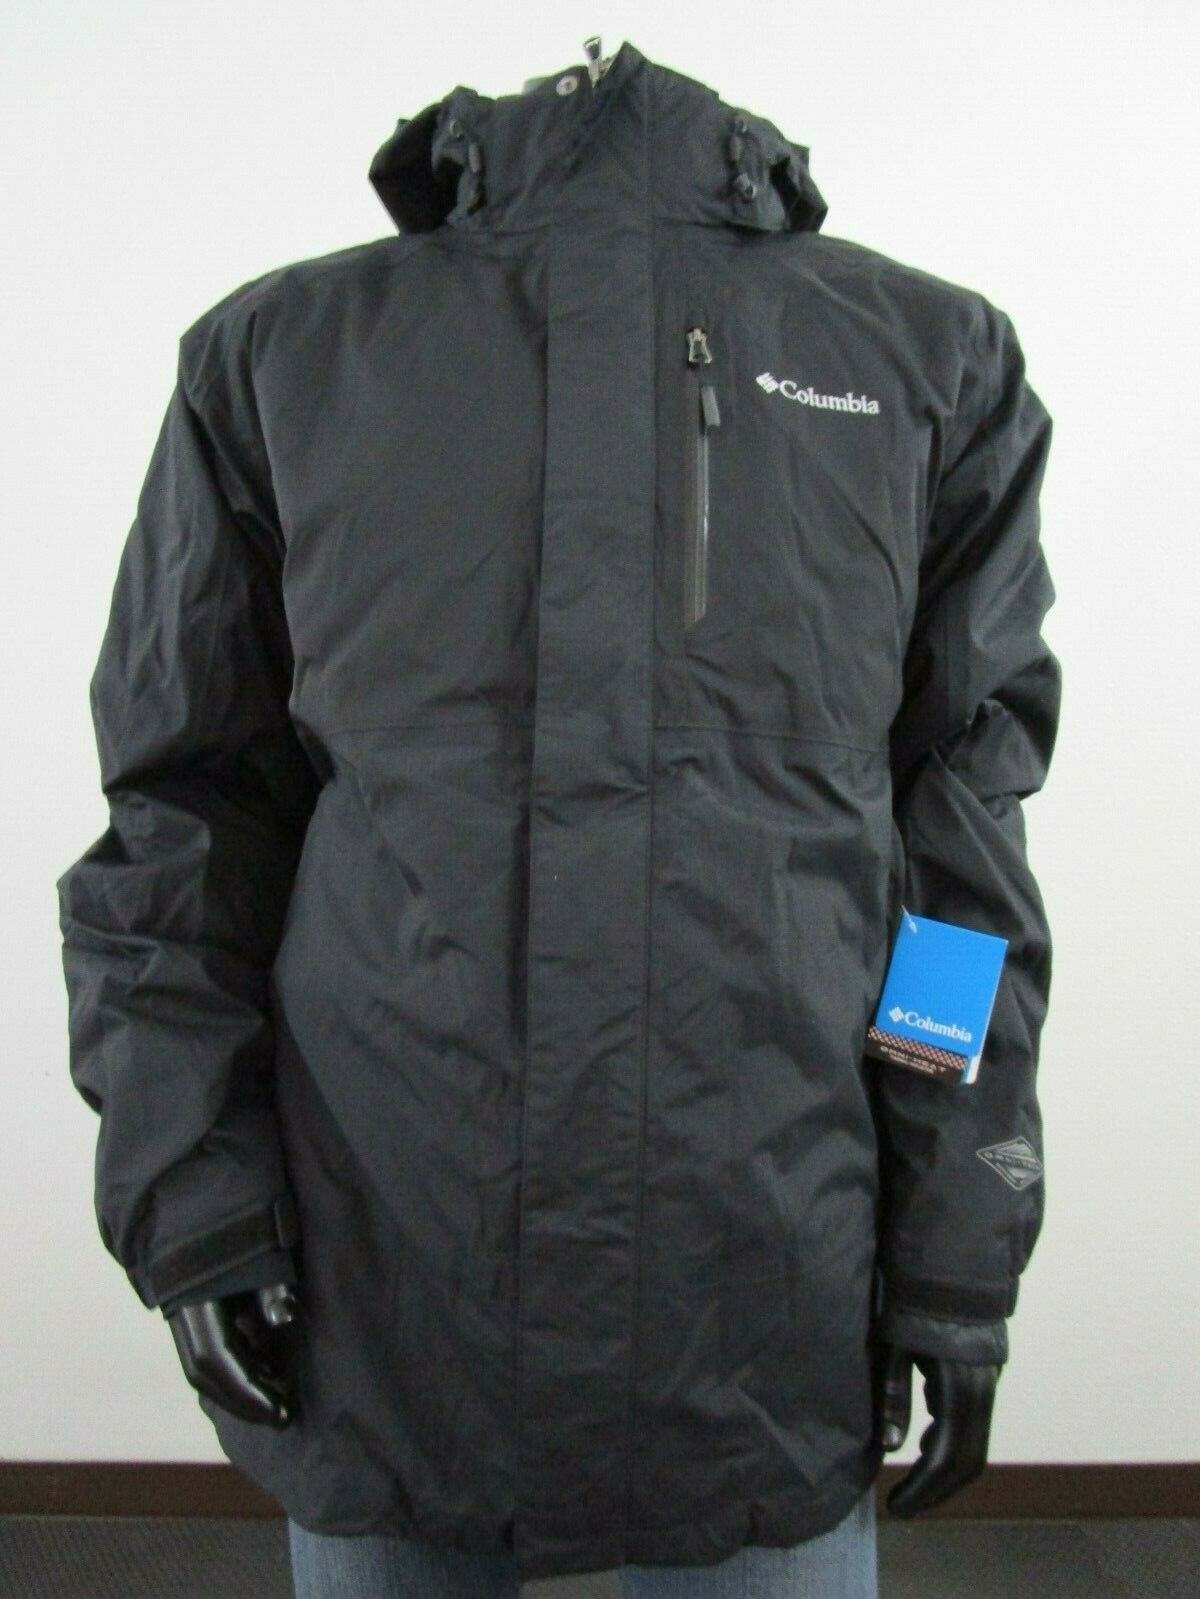 Green Mens Columbia Rural Mountain Interchange 3 in 1 Hooded Insulated Jacket